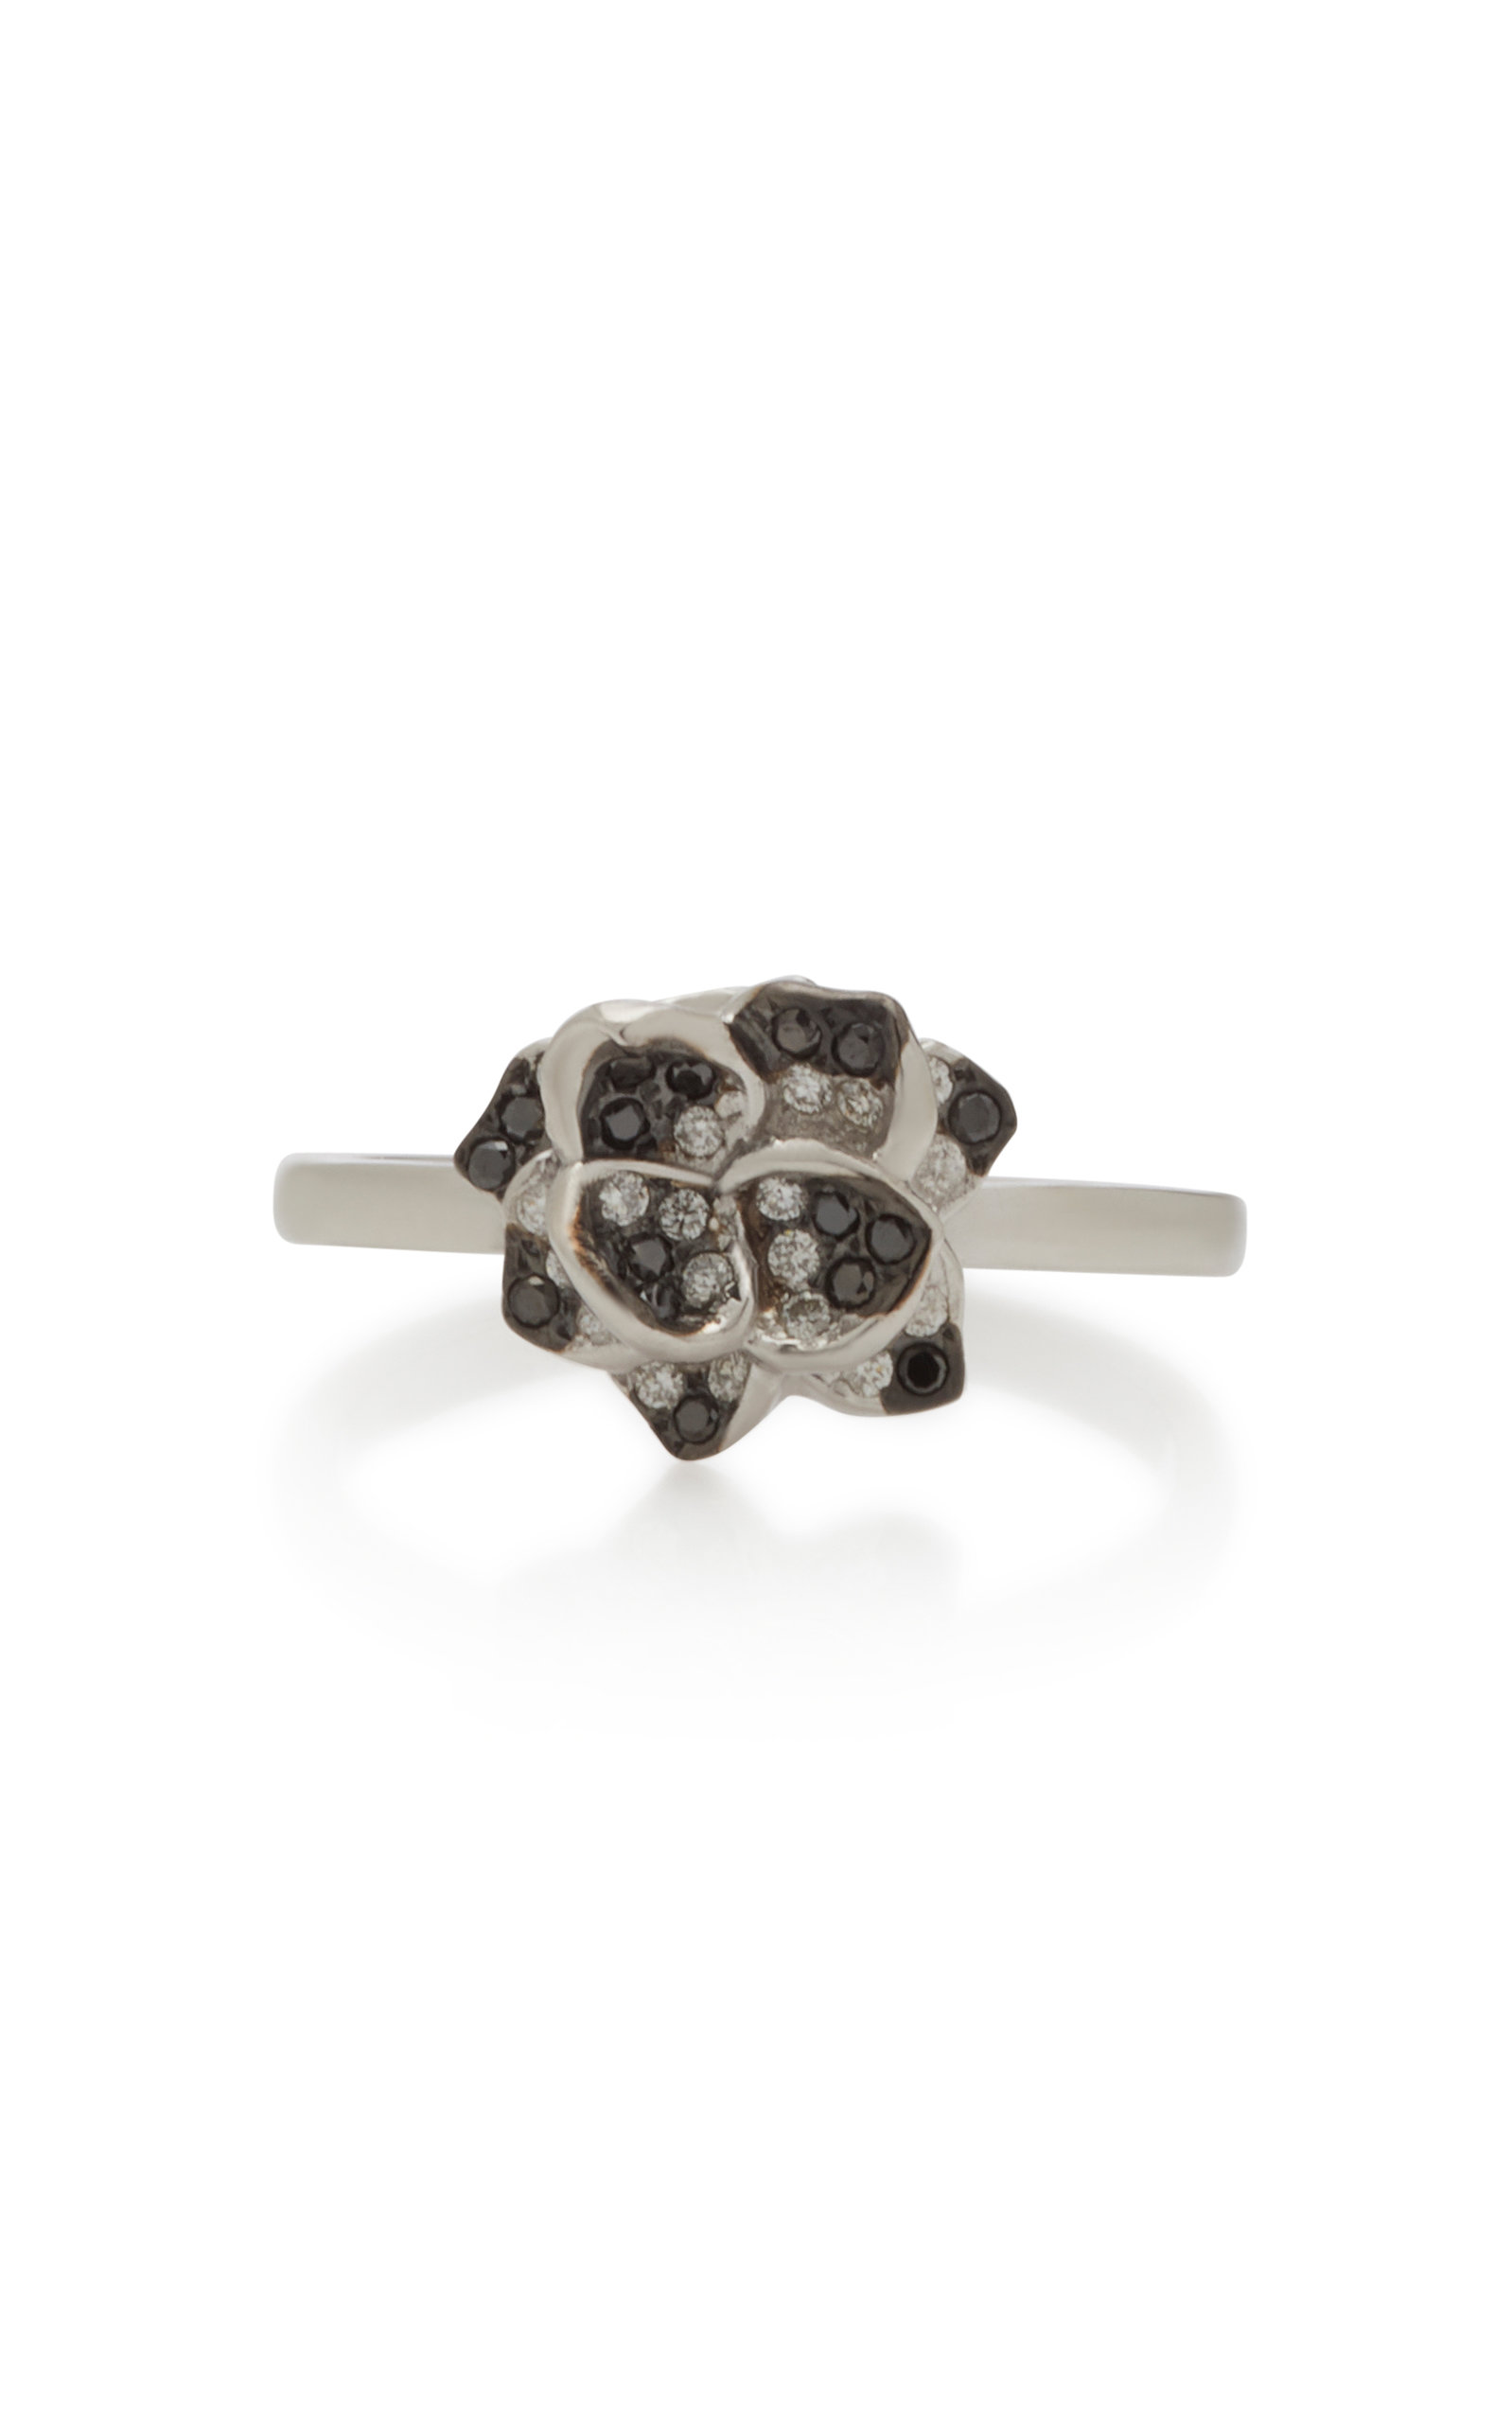 COLETTE JEWELRY 18K White Gold And Black Diamond Ring